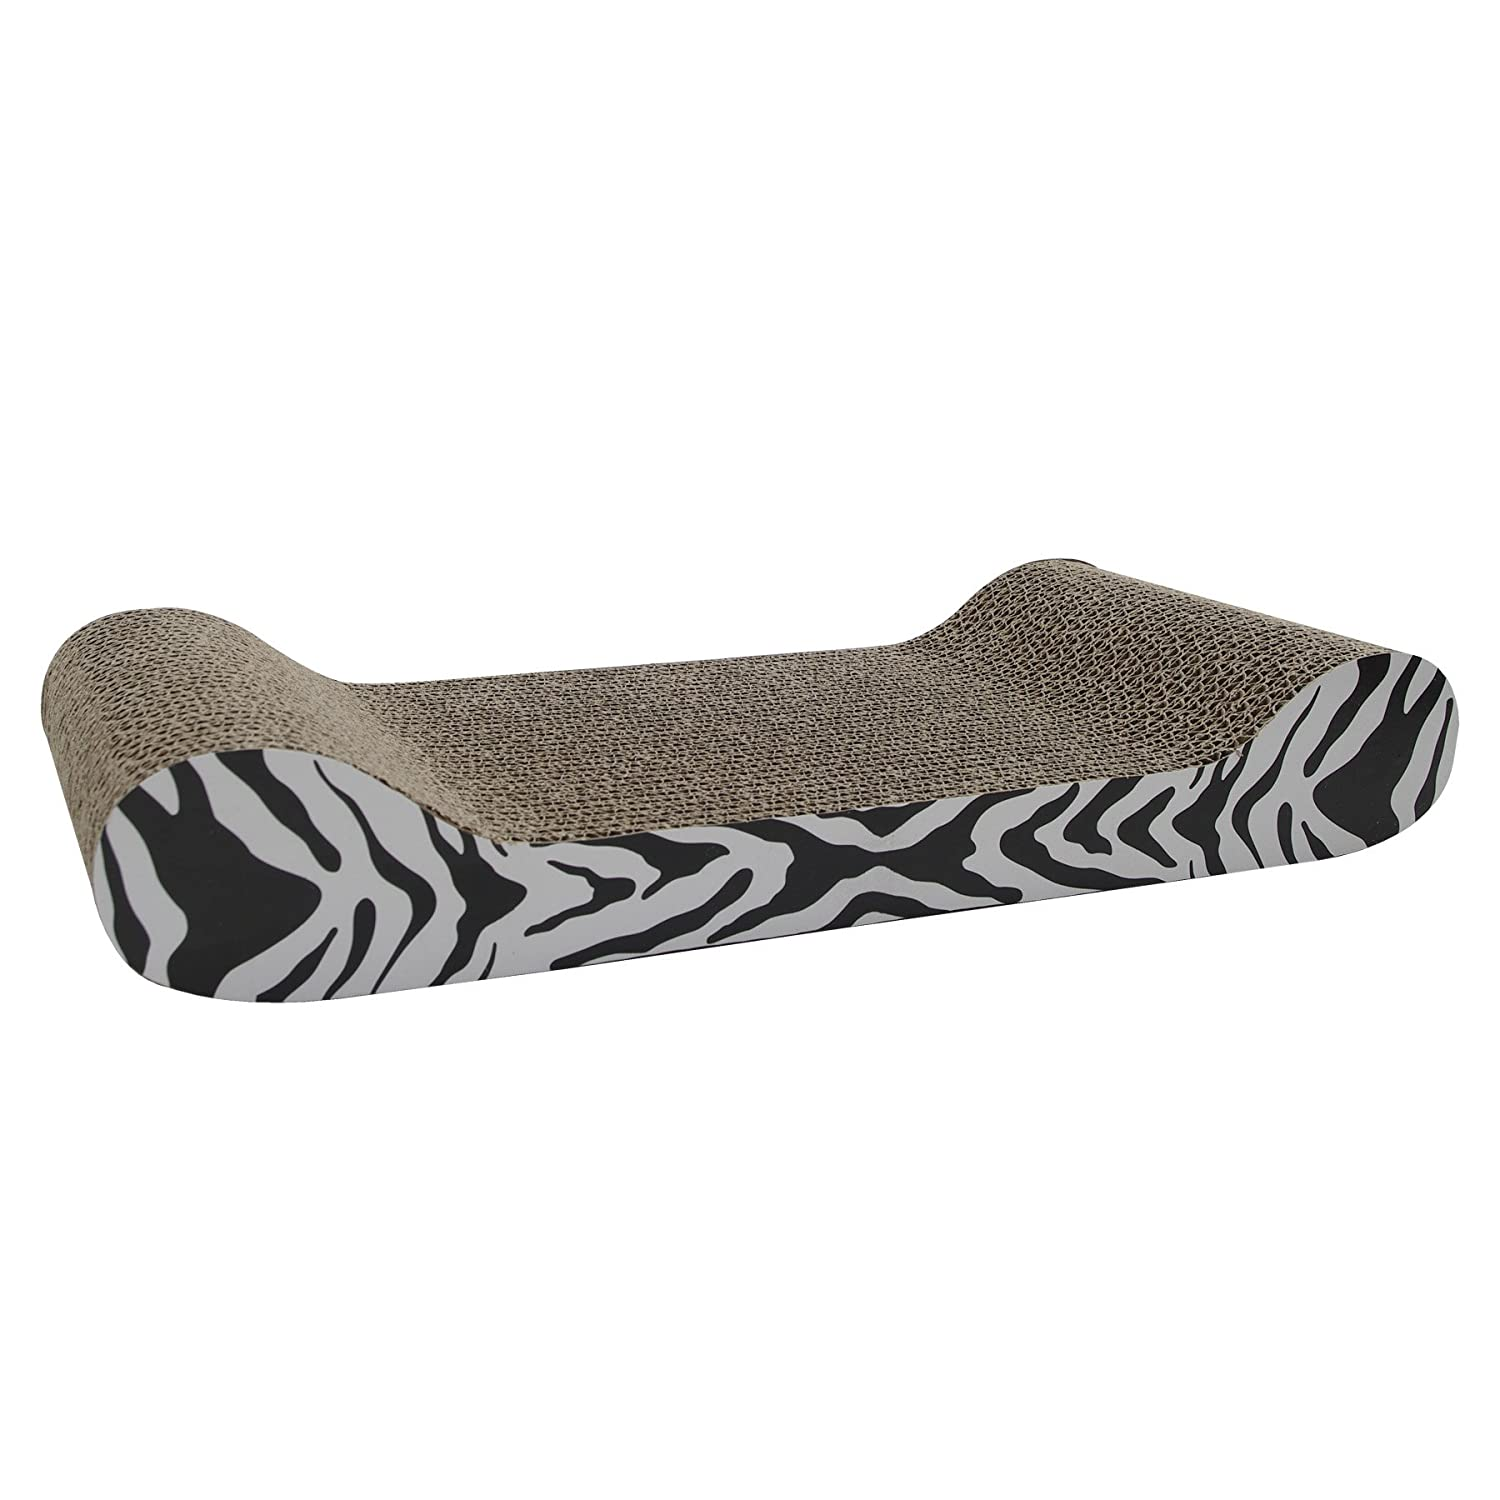 Catit Style Scratcher With Catnip Tiger Is Lounge Shaped Corrugated  Cardboard Scratcher. Product Comes With Organic Catnip And Provides Your Cat  Scratching ...